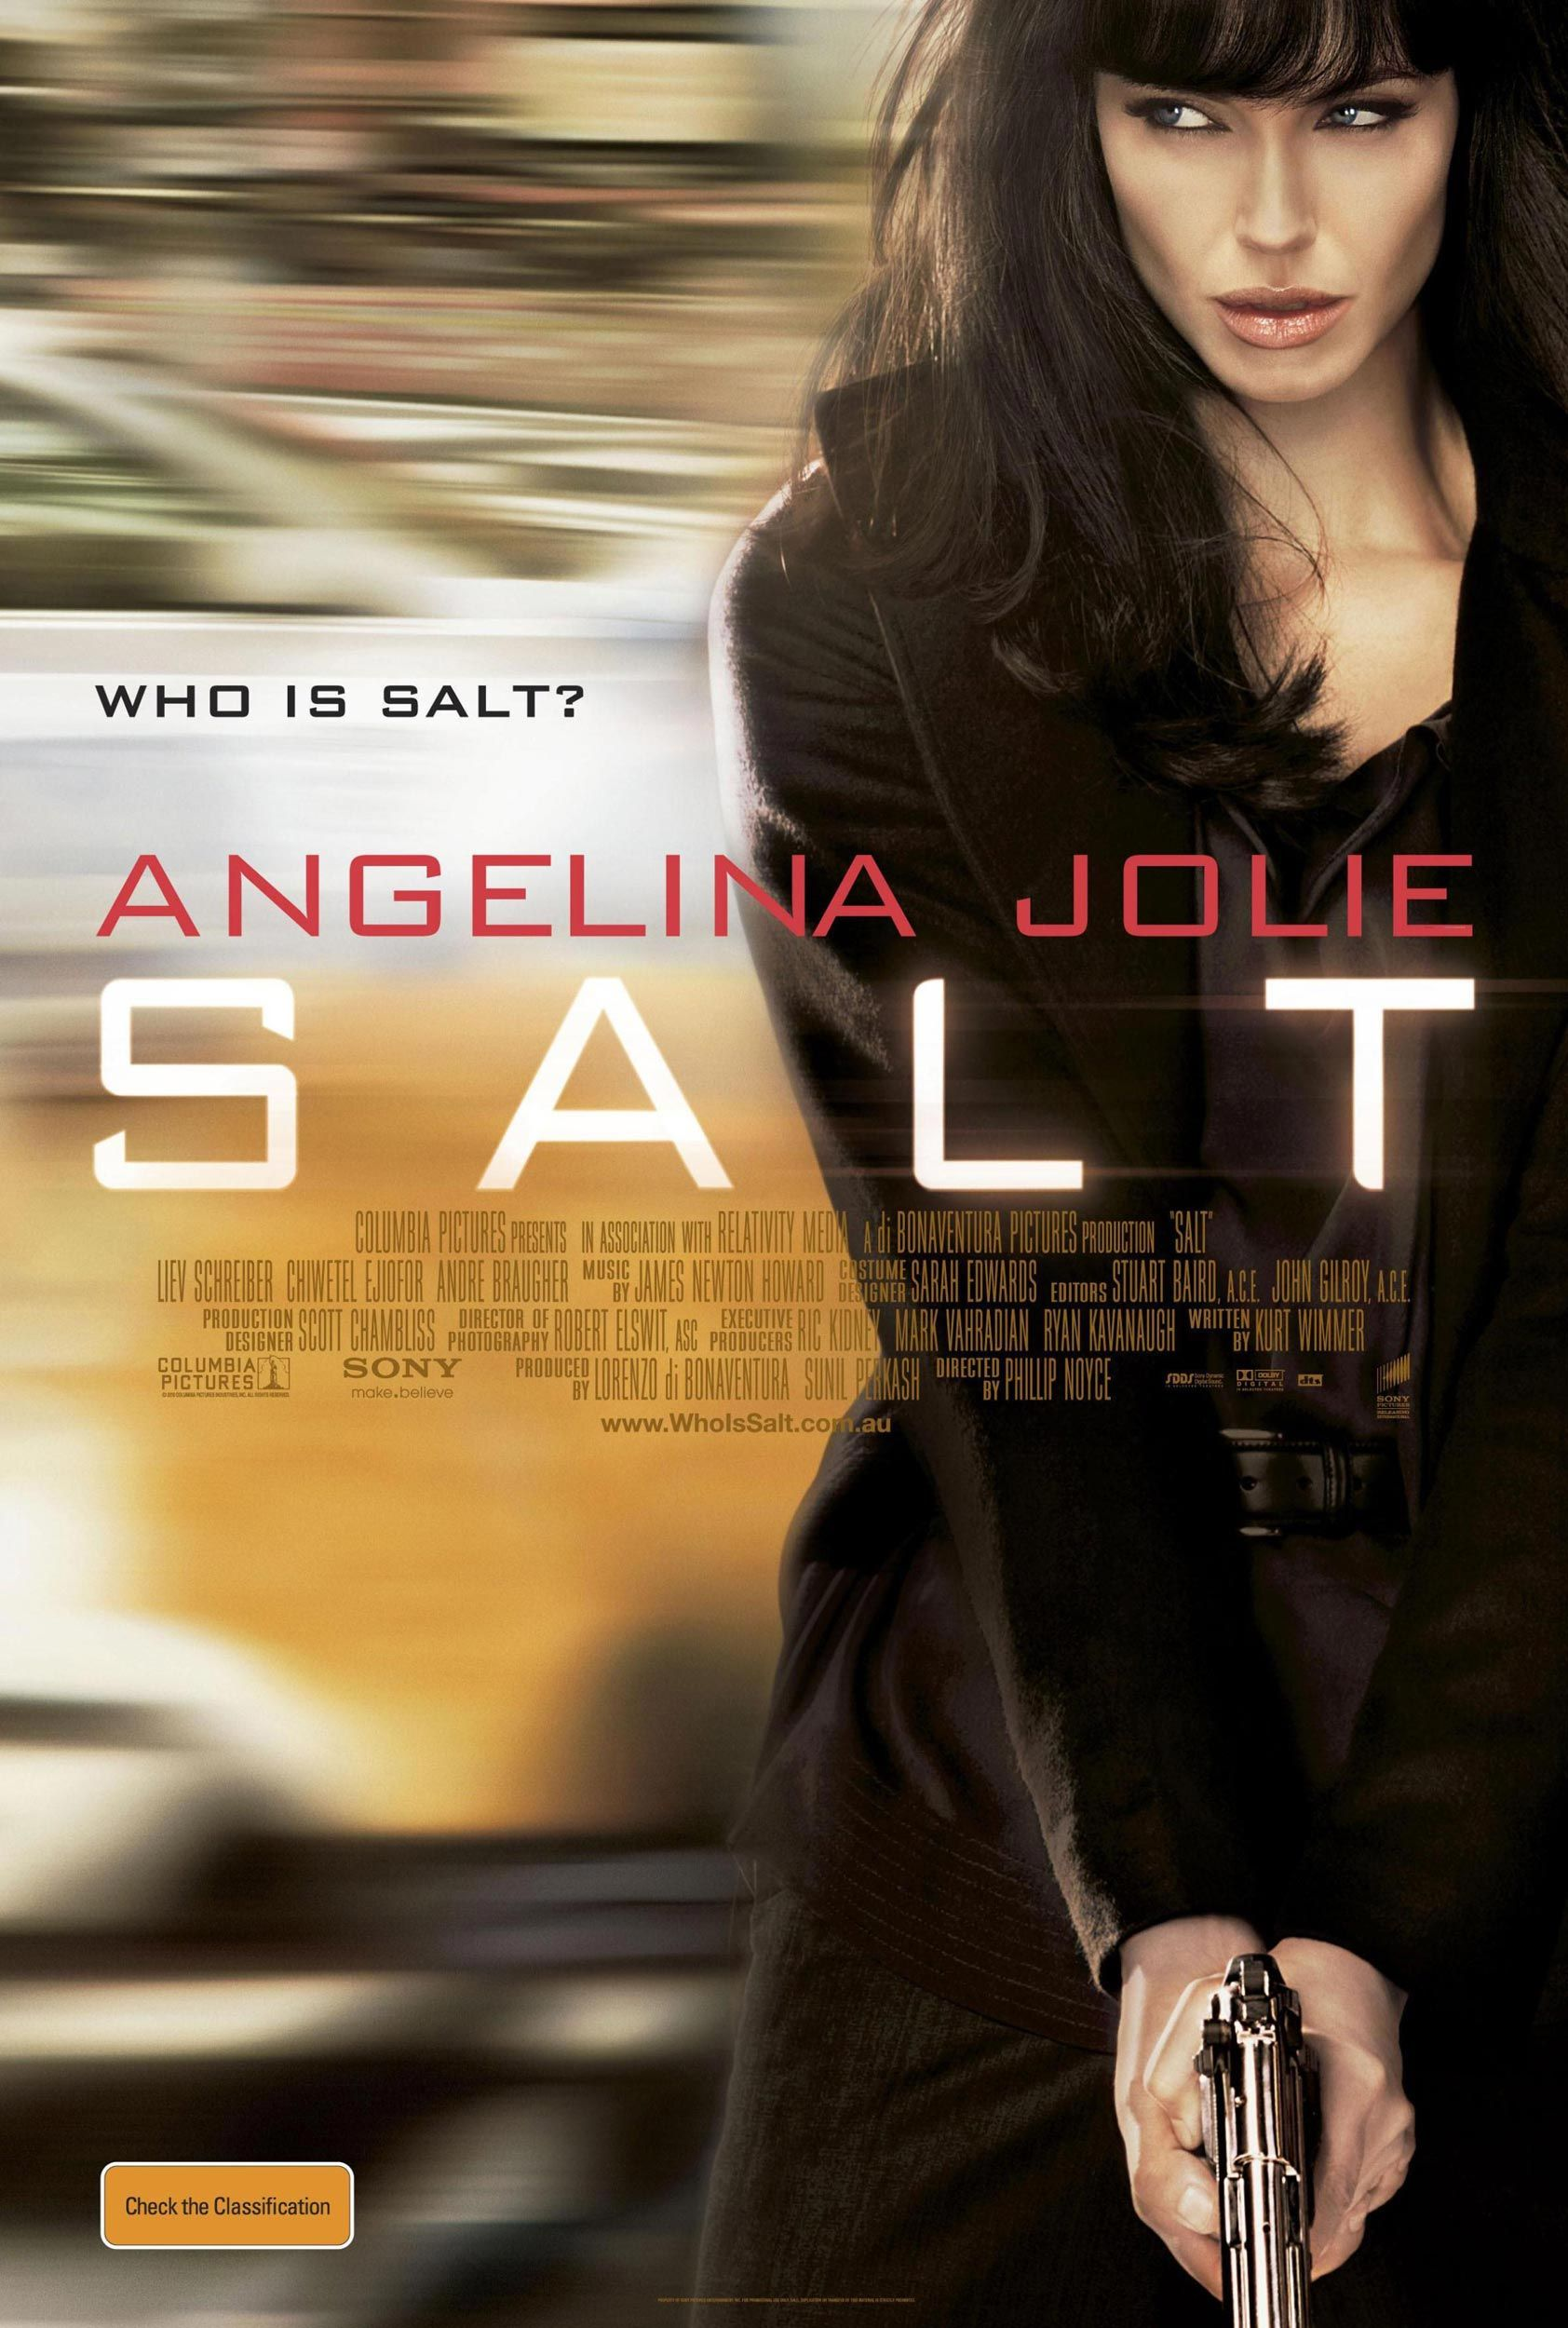 SALT (2010) with Angelina Jolie. Not my favorite. Kinda weird and strange. The plot line was rather long so it lost my attention. I will give it probably a 4